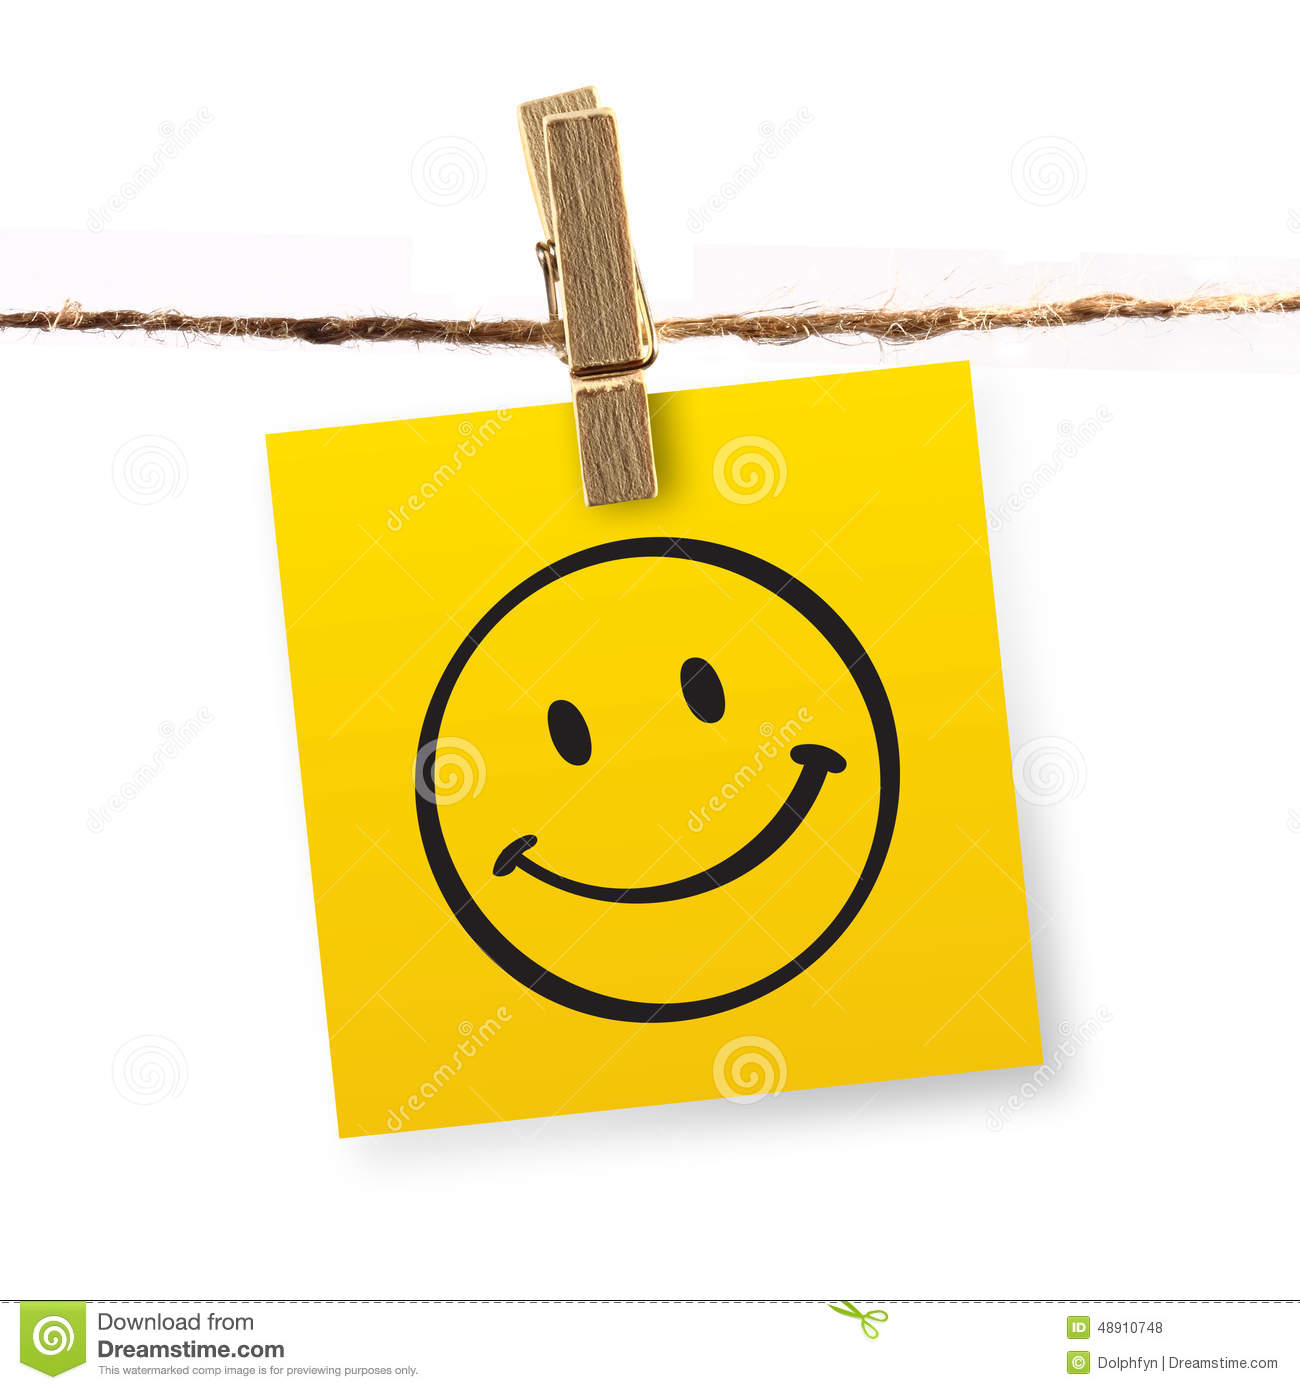 Smiley face symbol stock photo image of happiness icon 48910748 smiley face symbol biocorpaavc Images